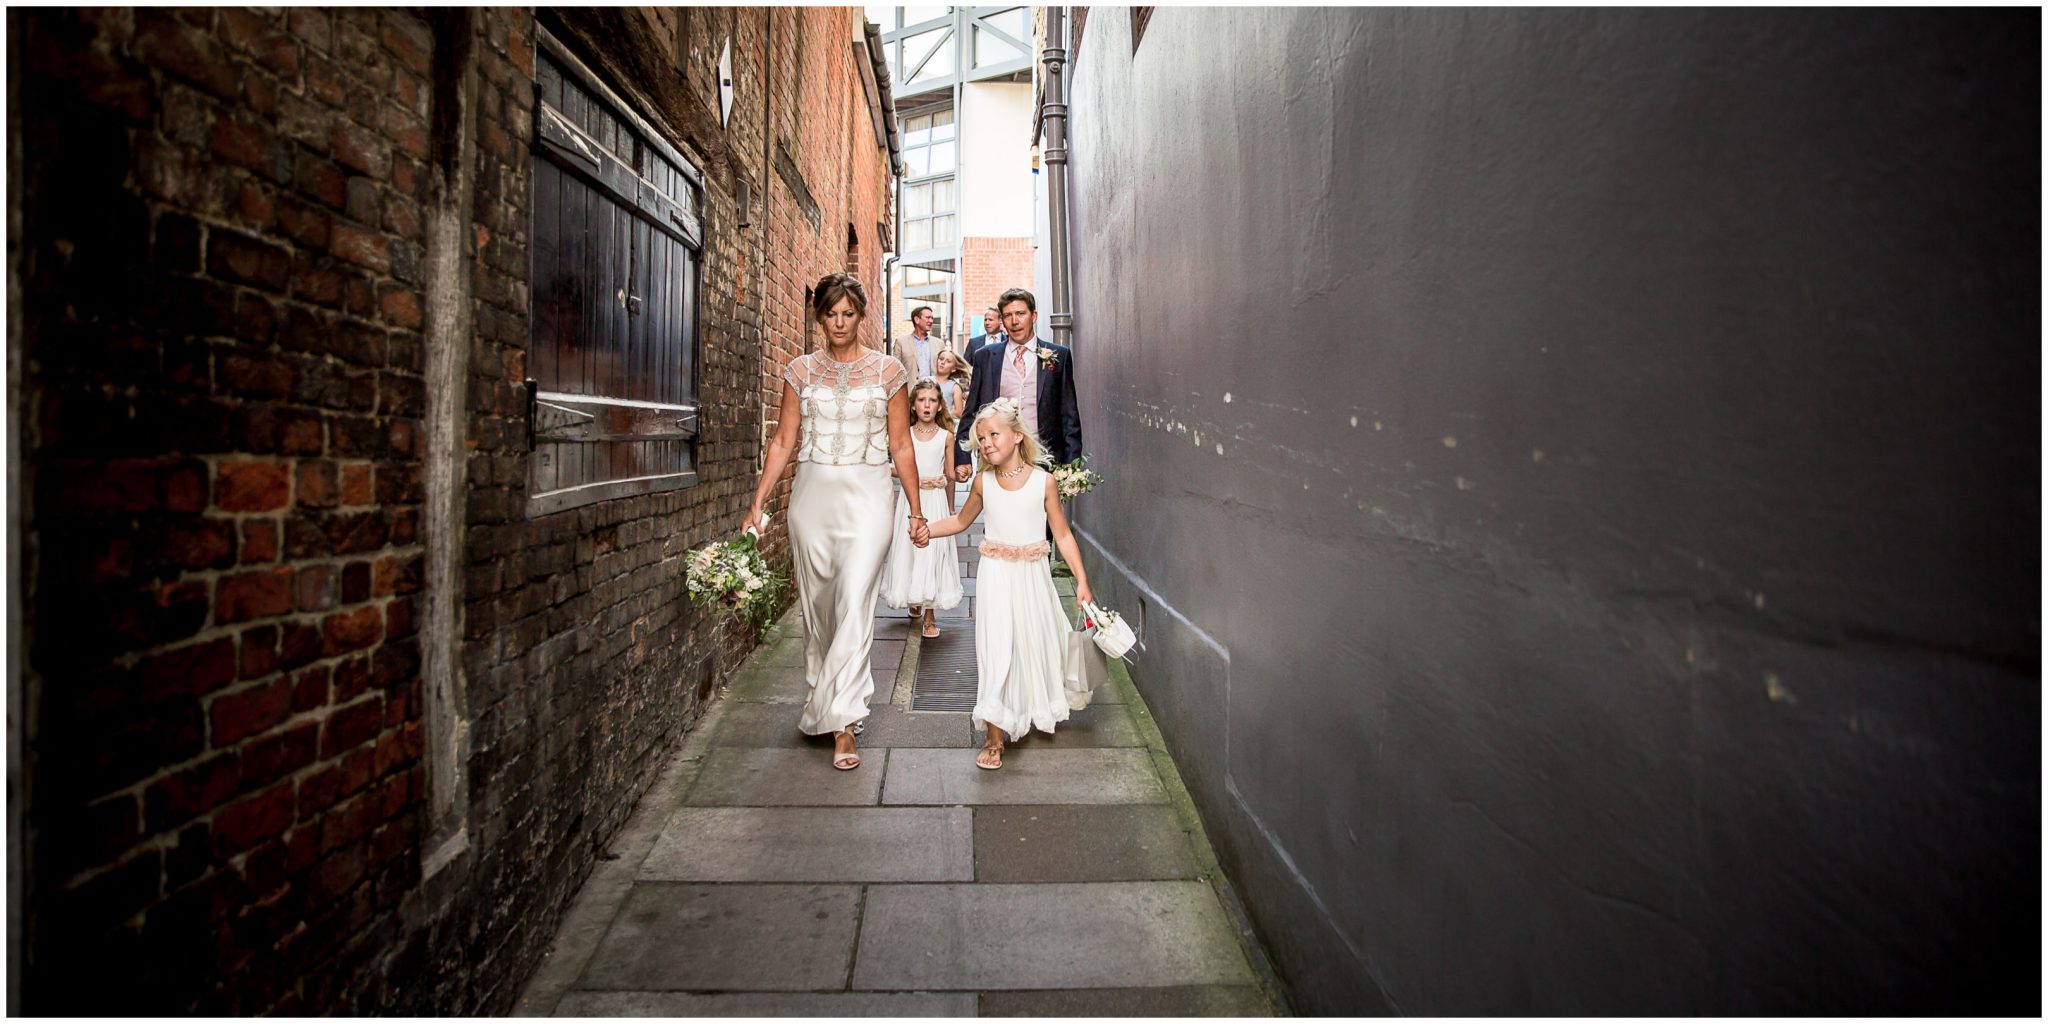 Bride, groom and flower girls walking through town